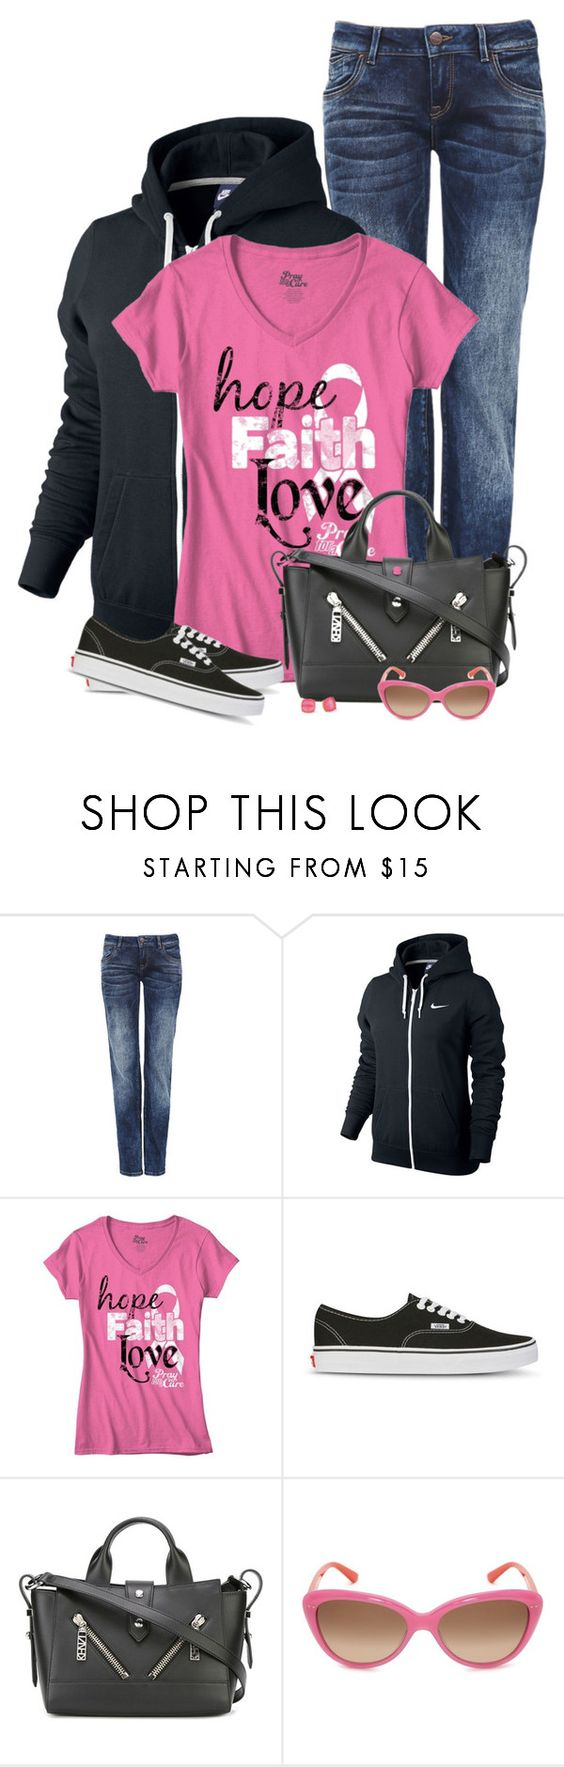 """Black Hoodie, Pink T-Shirt"" by daiscat ❤ liked on Polyvore featuring NIKE, Vans, Kenzo and Kate Spade"